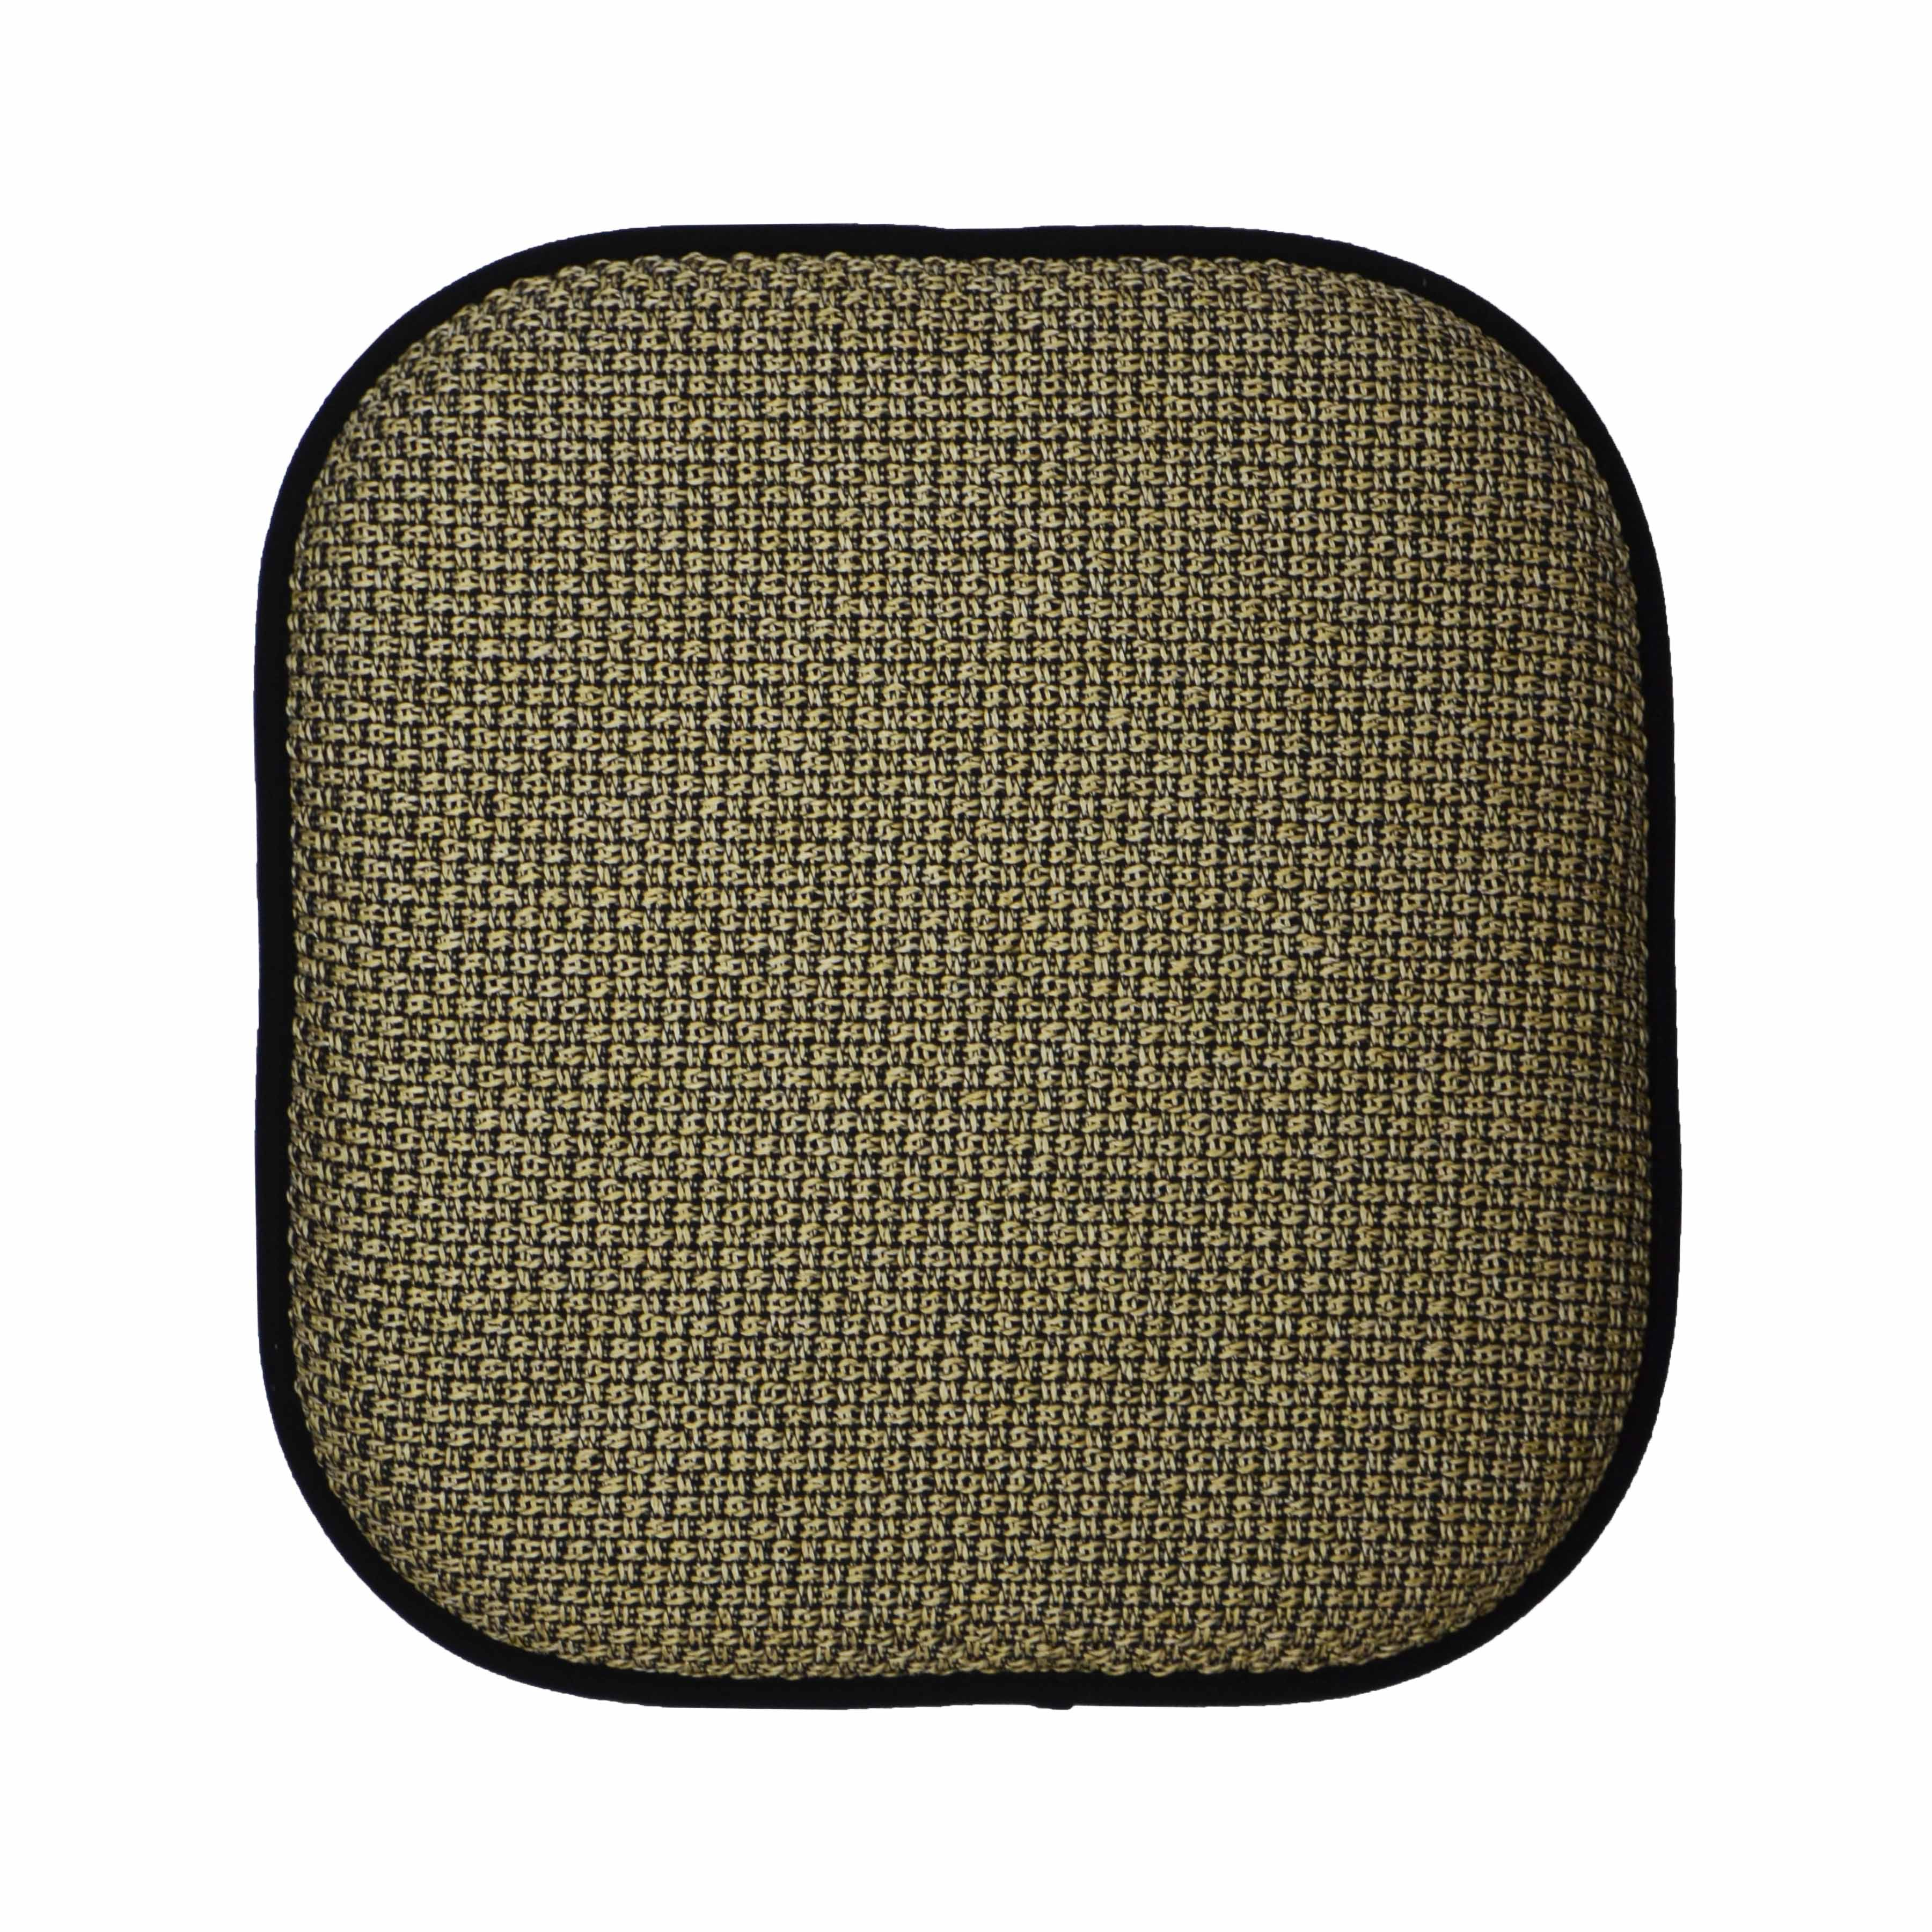 Foam Chair Cushions Memory Foam Chair Pad Seat Cushion With Non Slip Backing